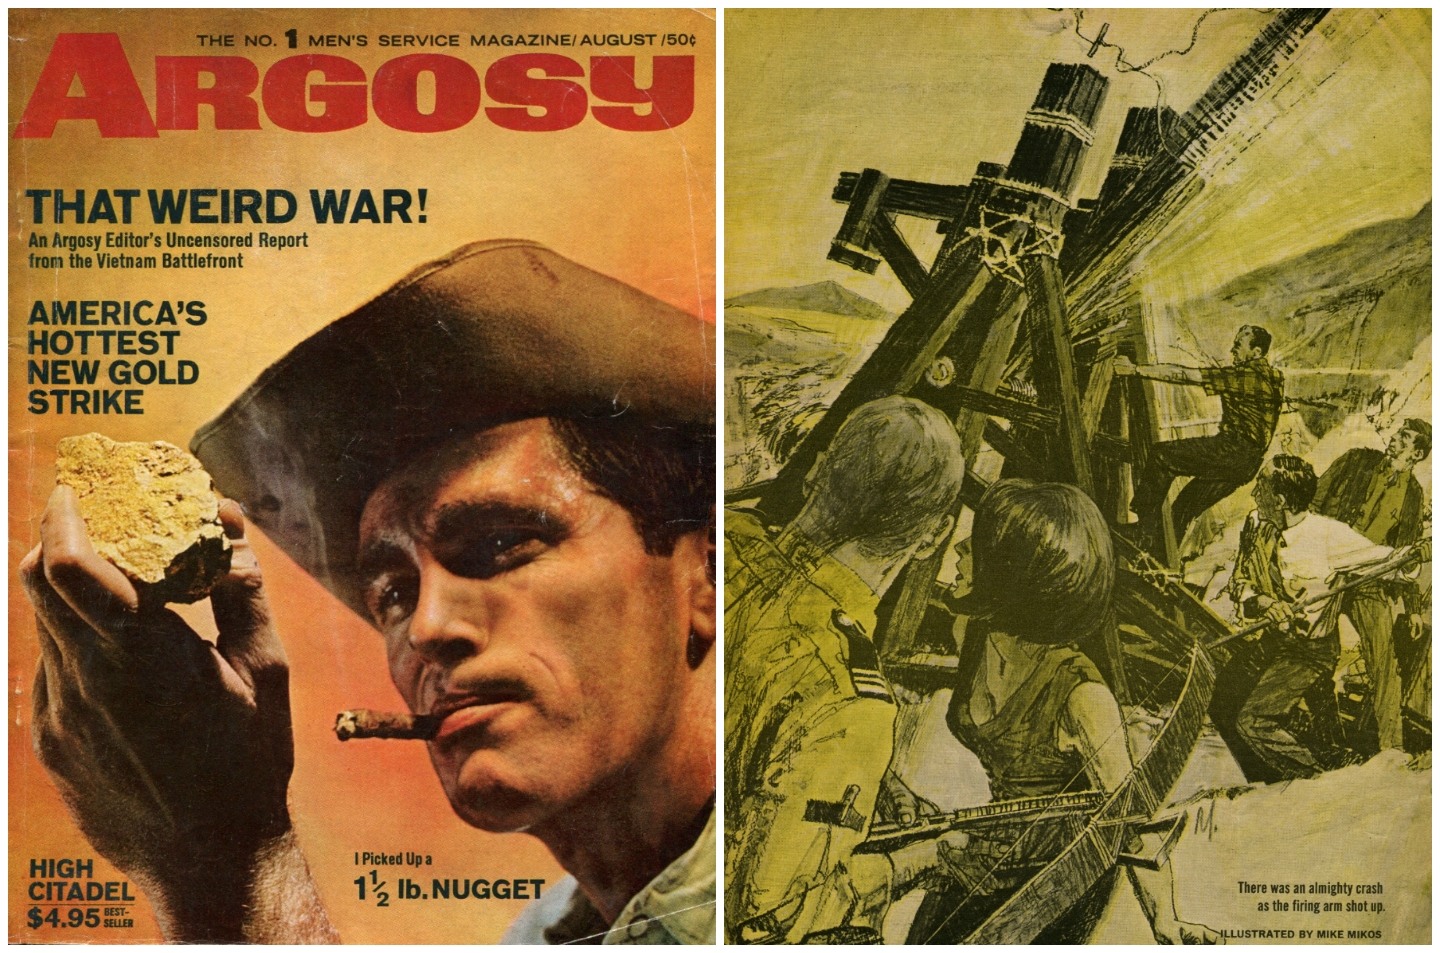 Argosy Men's Magazine - August 1965 © 1965, 2016 Steeger Properties, LLC. All rights reserved.